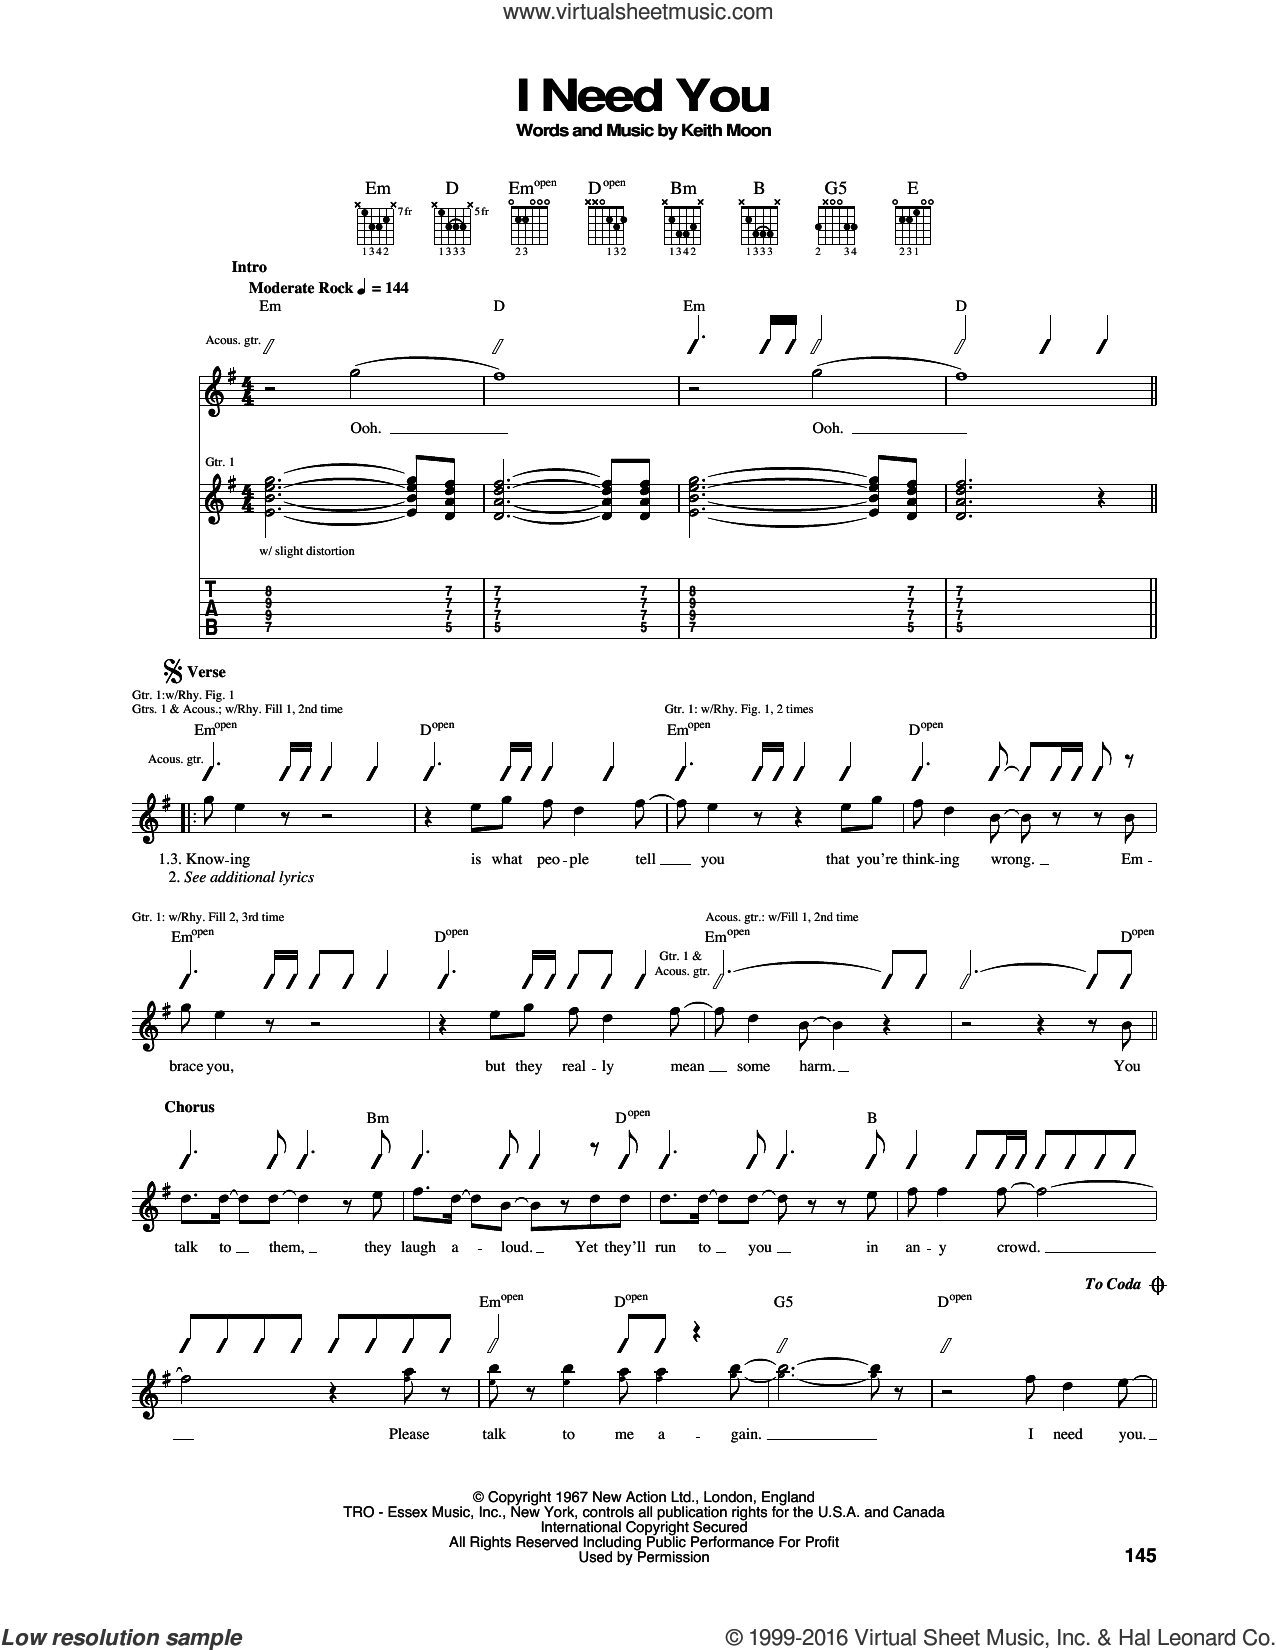 I Need You sheet music for guitar (tablature) by Keith Moon and The Who. Score Image Preview.